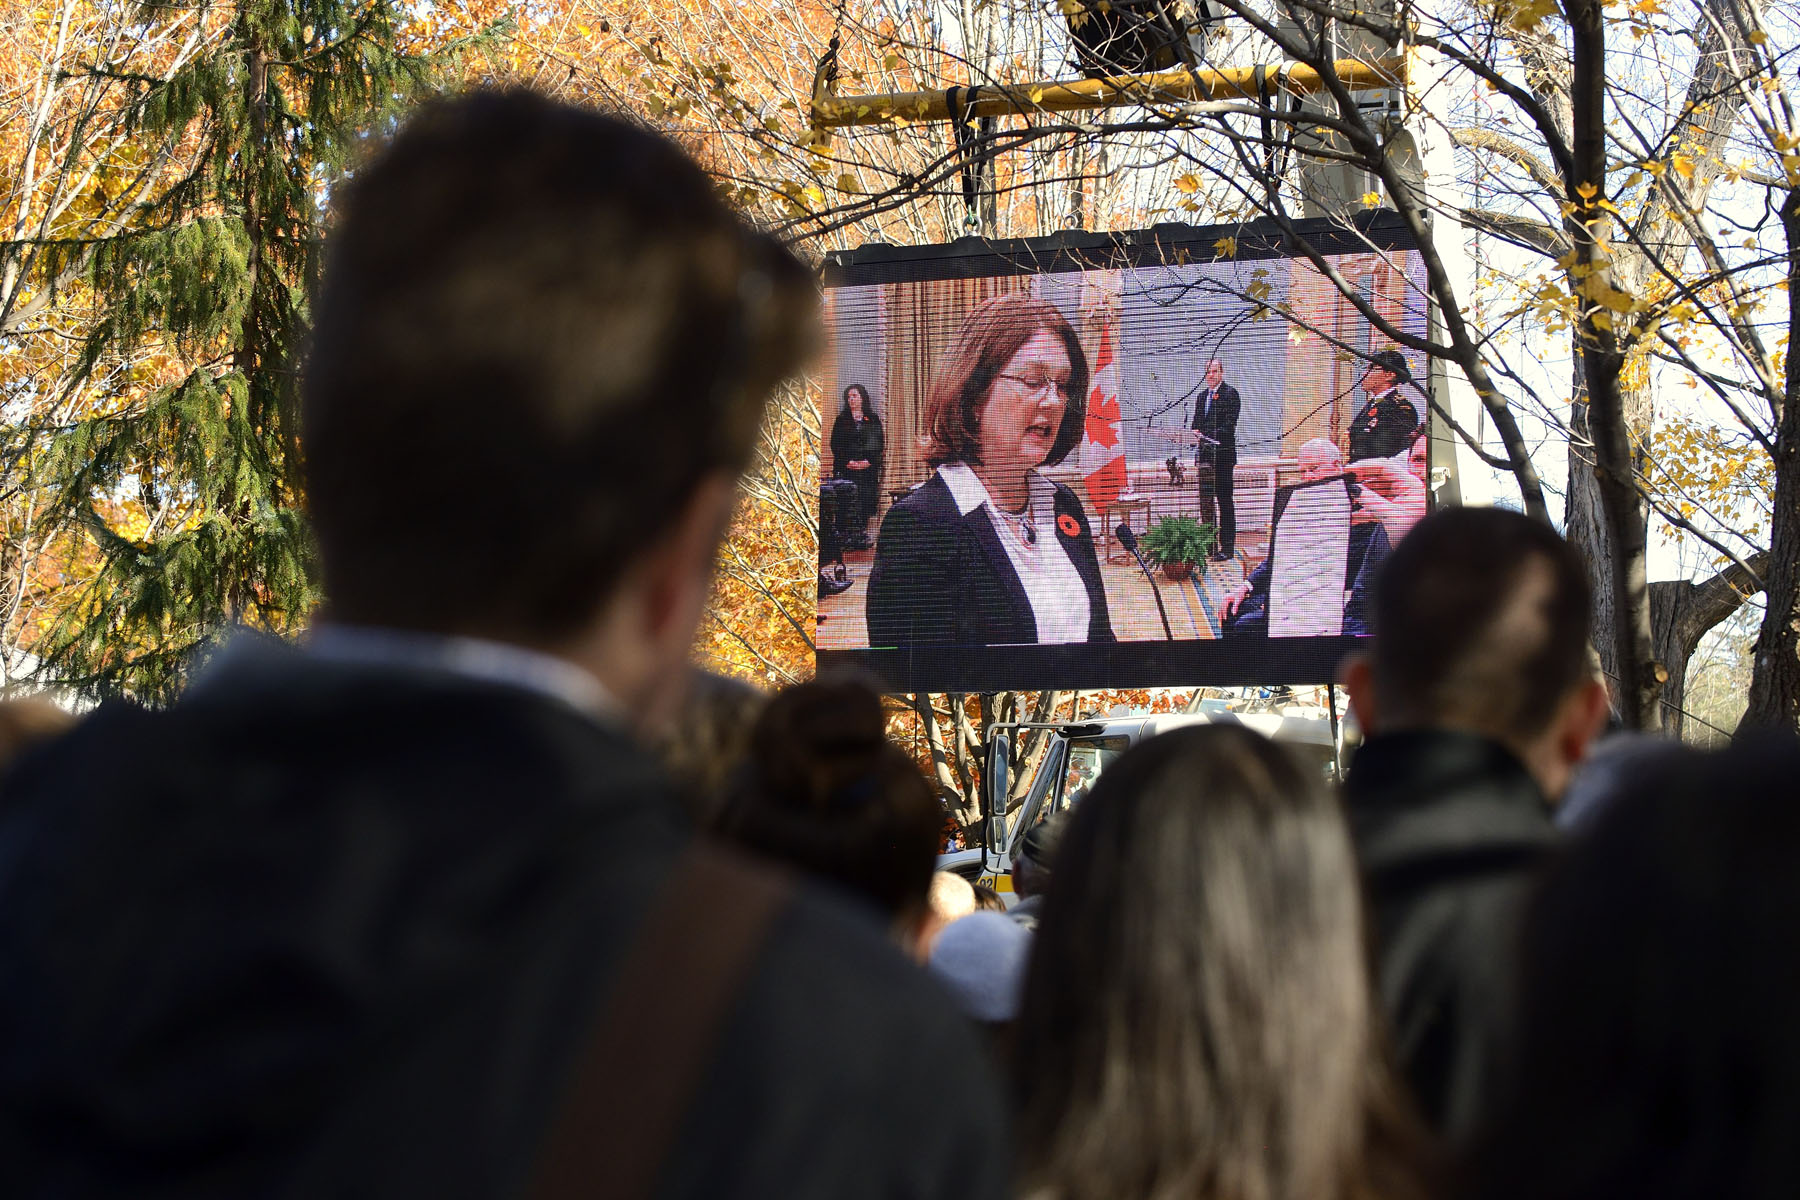 Visitors were able to watch the ceremony on two screens located on the grounds.